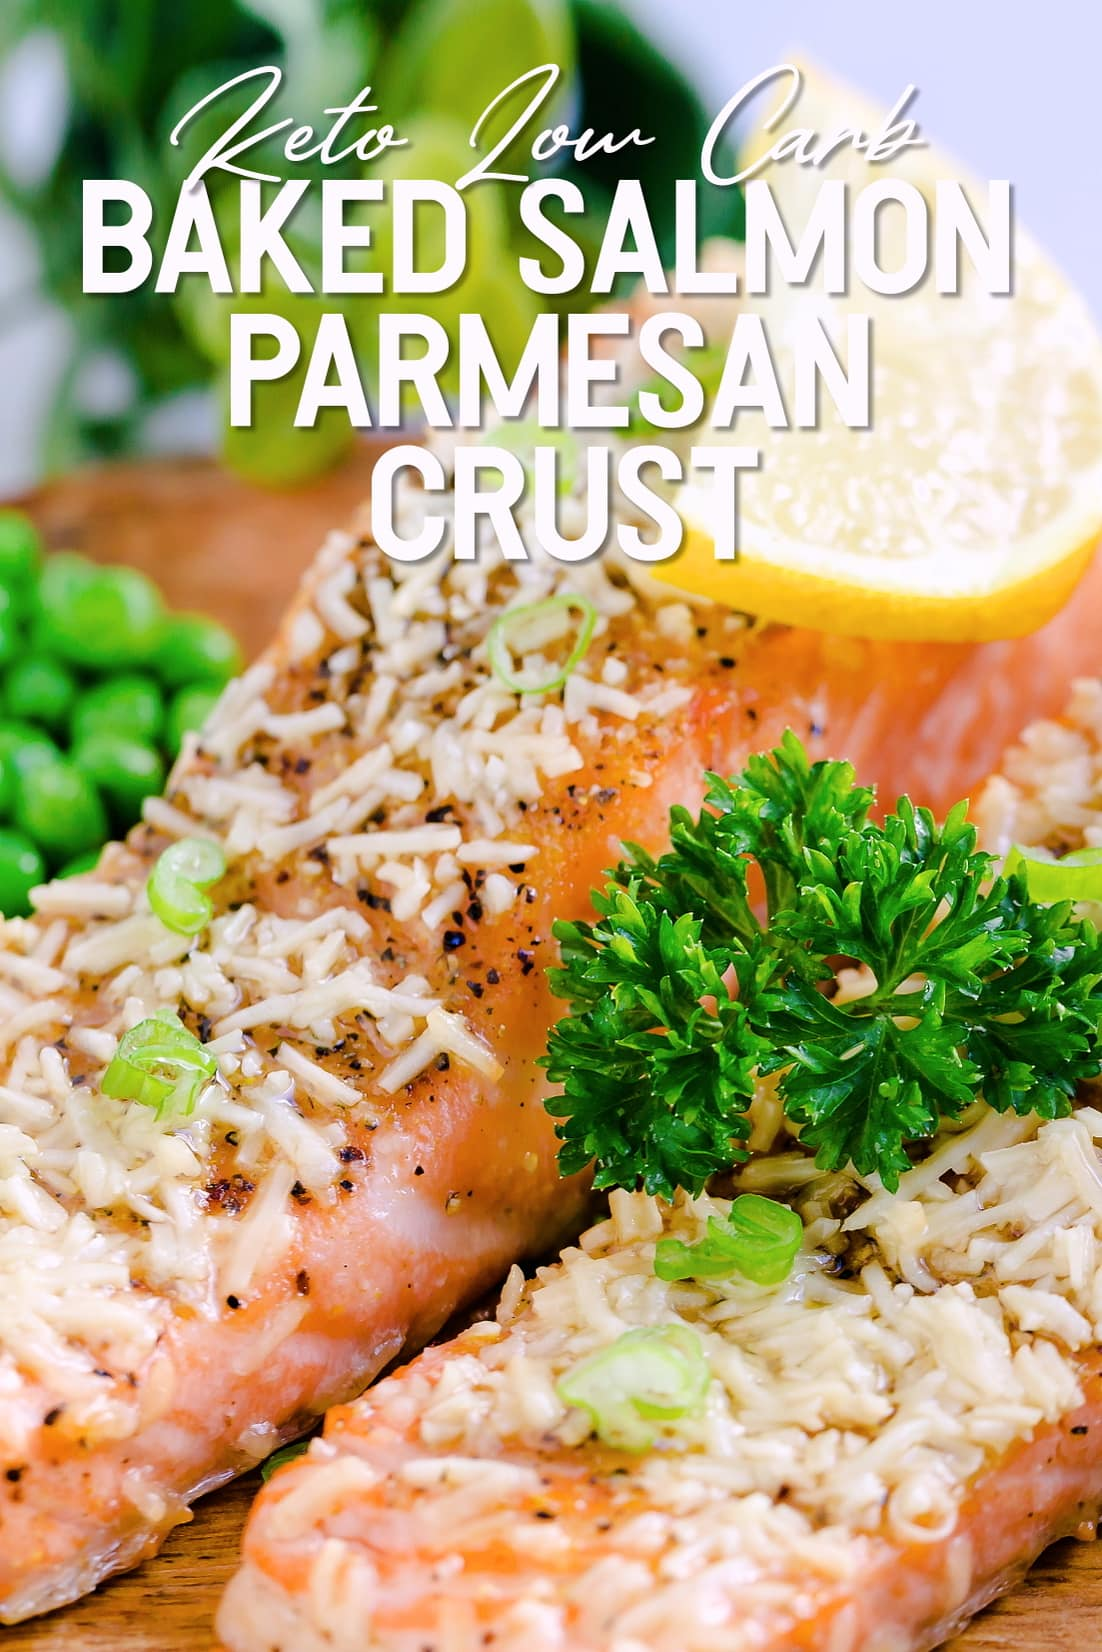 Baked Salmon with Parmesan Crust served on a wooden plank